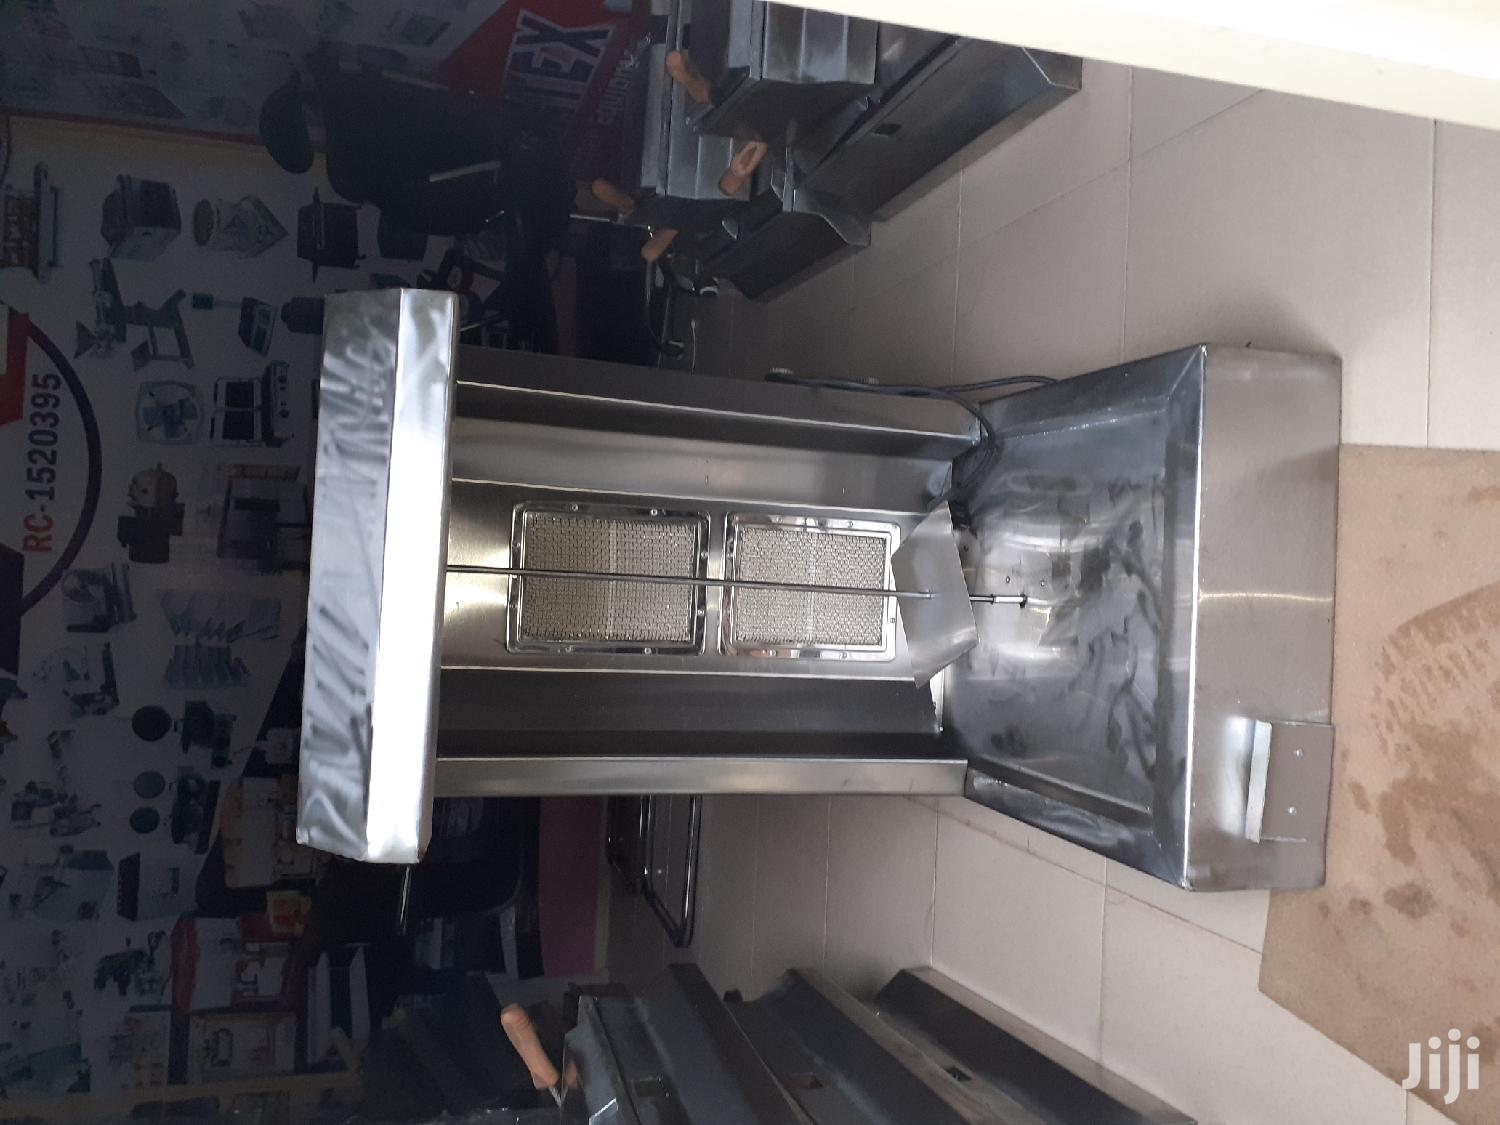 Shawarma Machine And Toaster Grill | Restaurant & Catering Equipment for sale in Lagos State, Nigeria